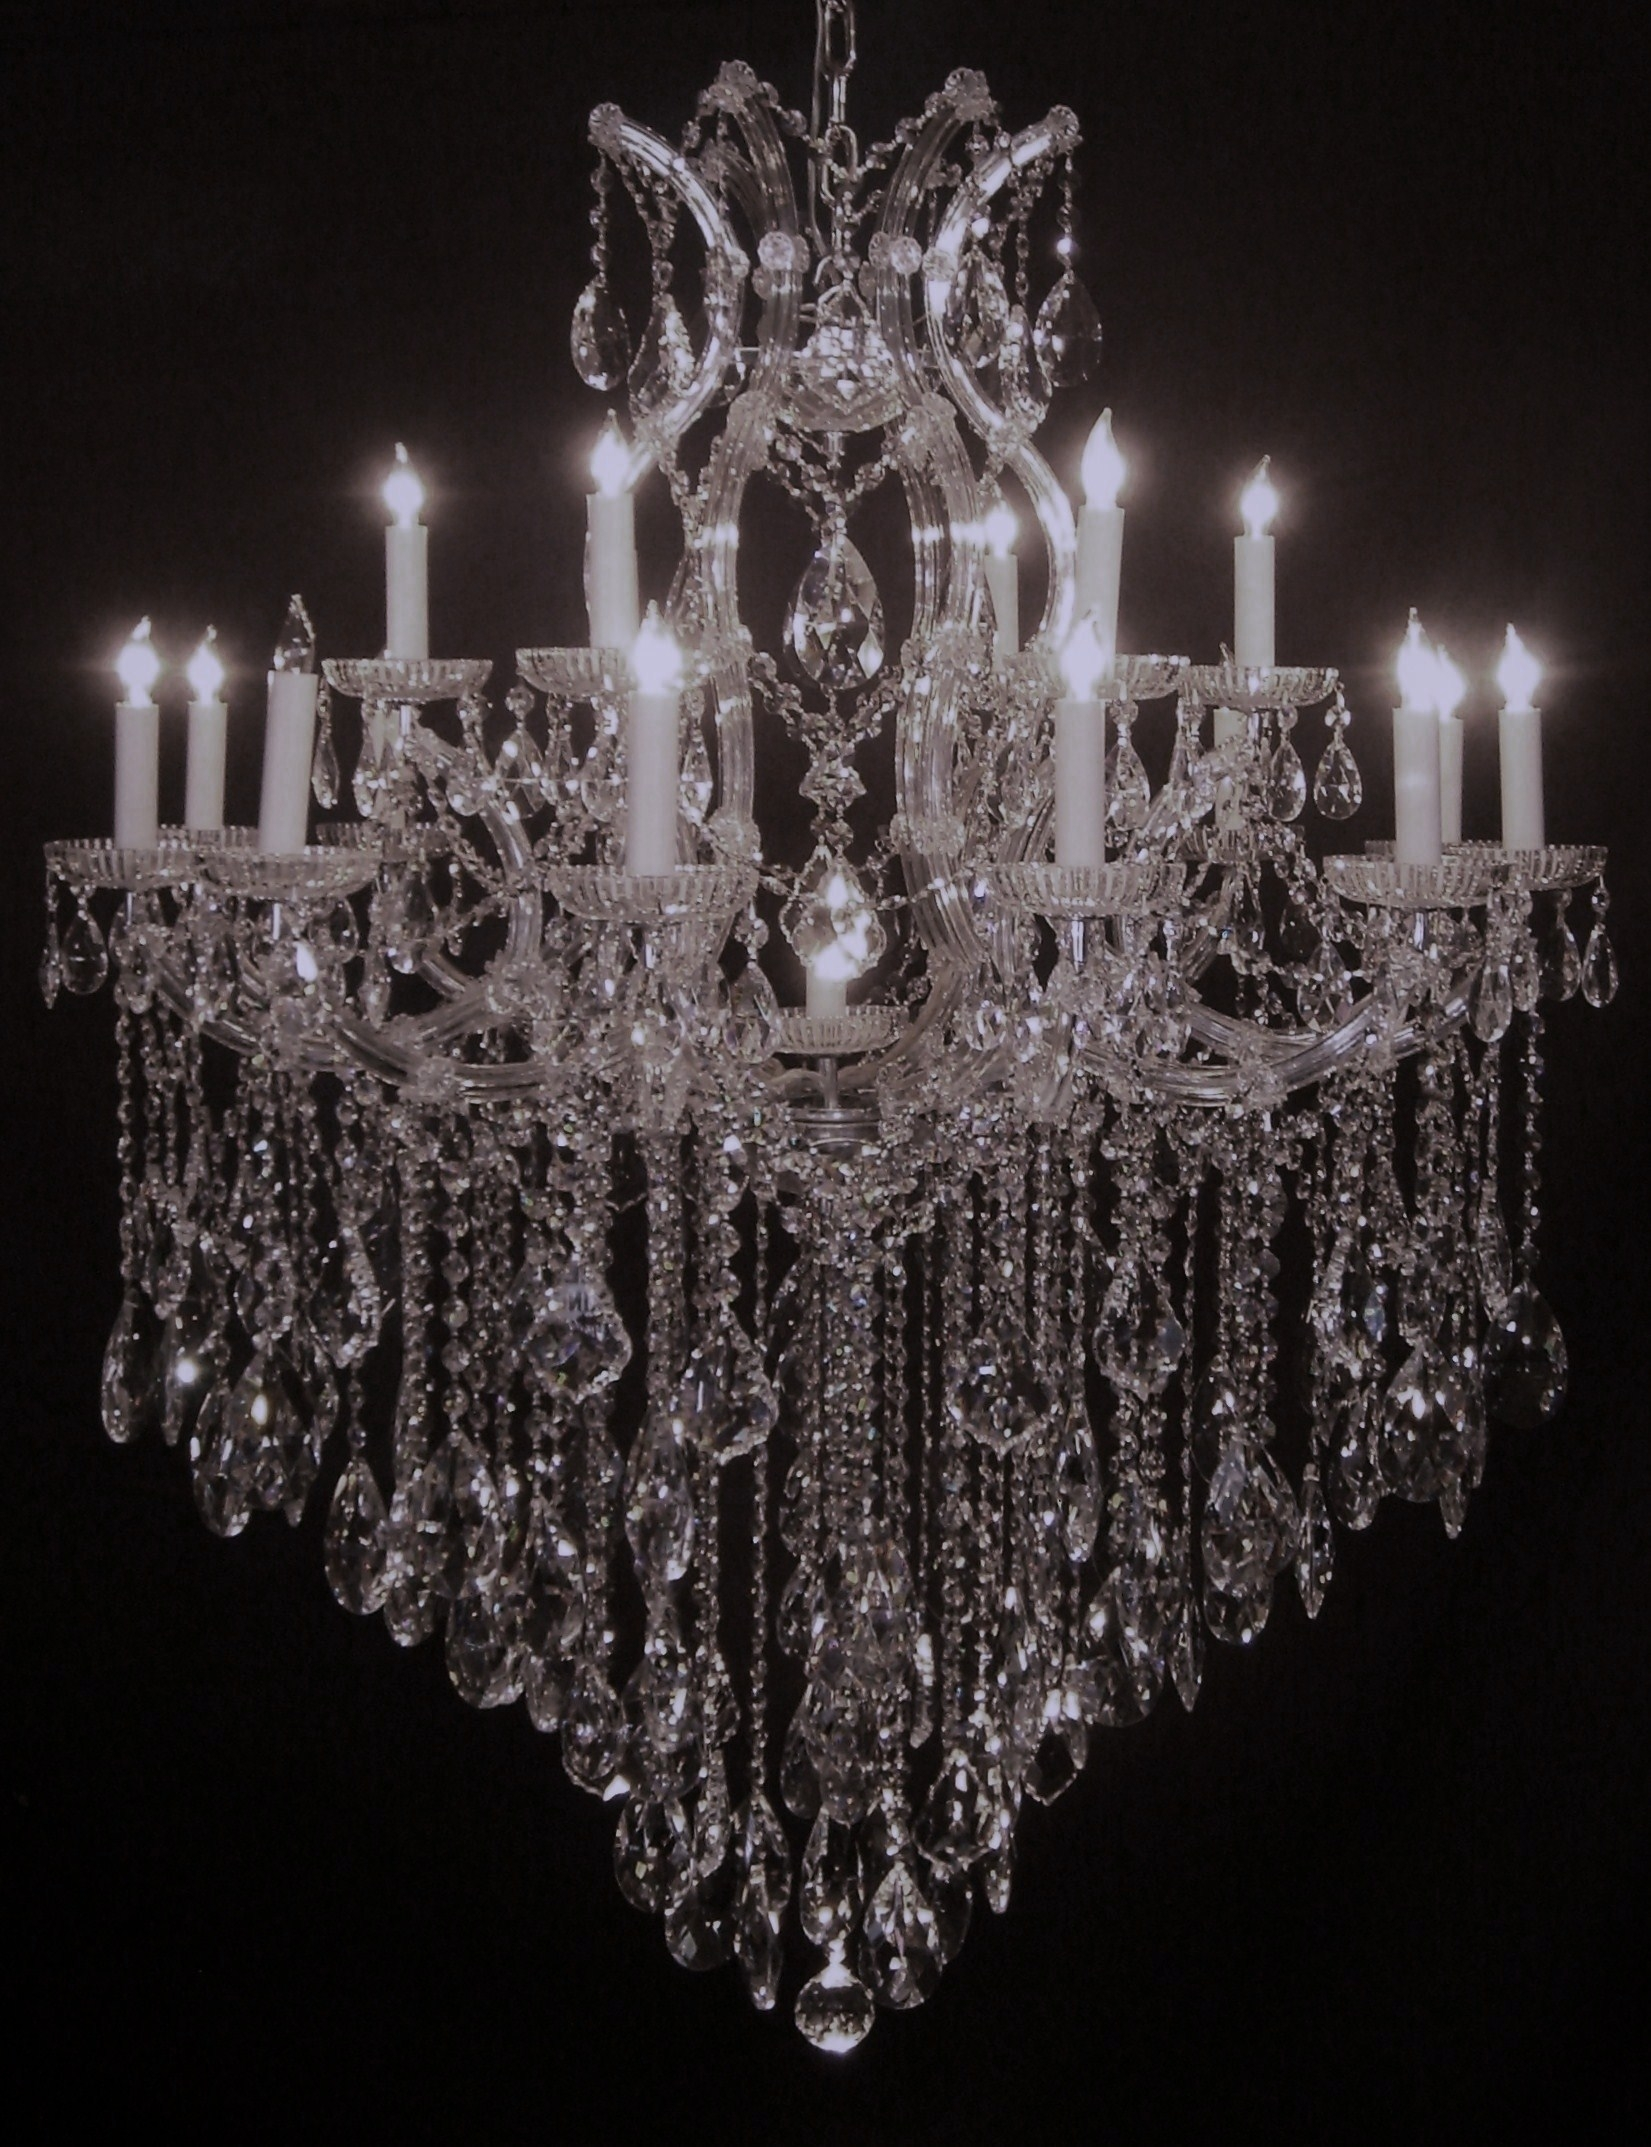 Chandeliers Mortons Antiques For Big Crystal Chandelier (Image 7 of 15)